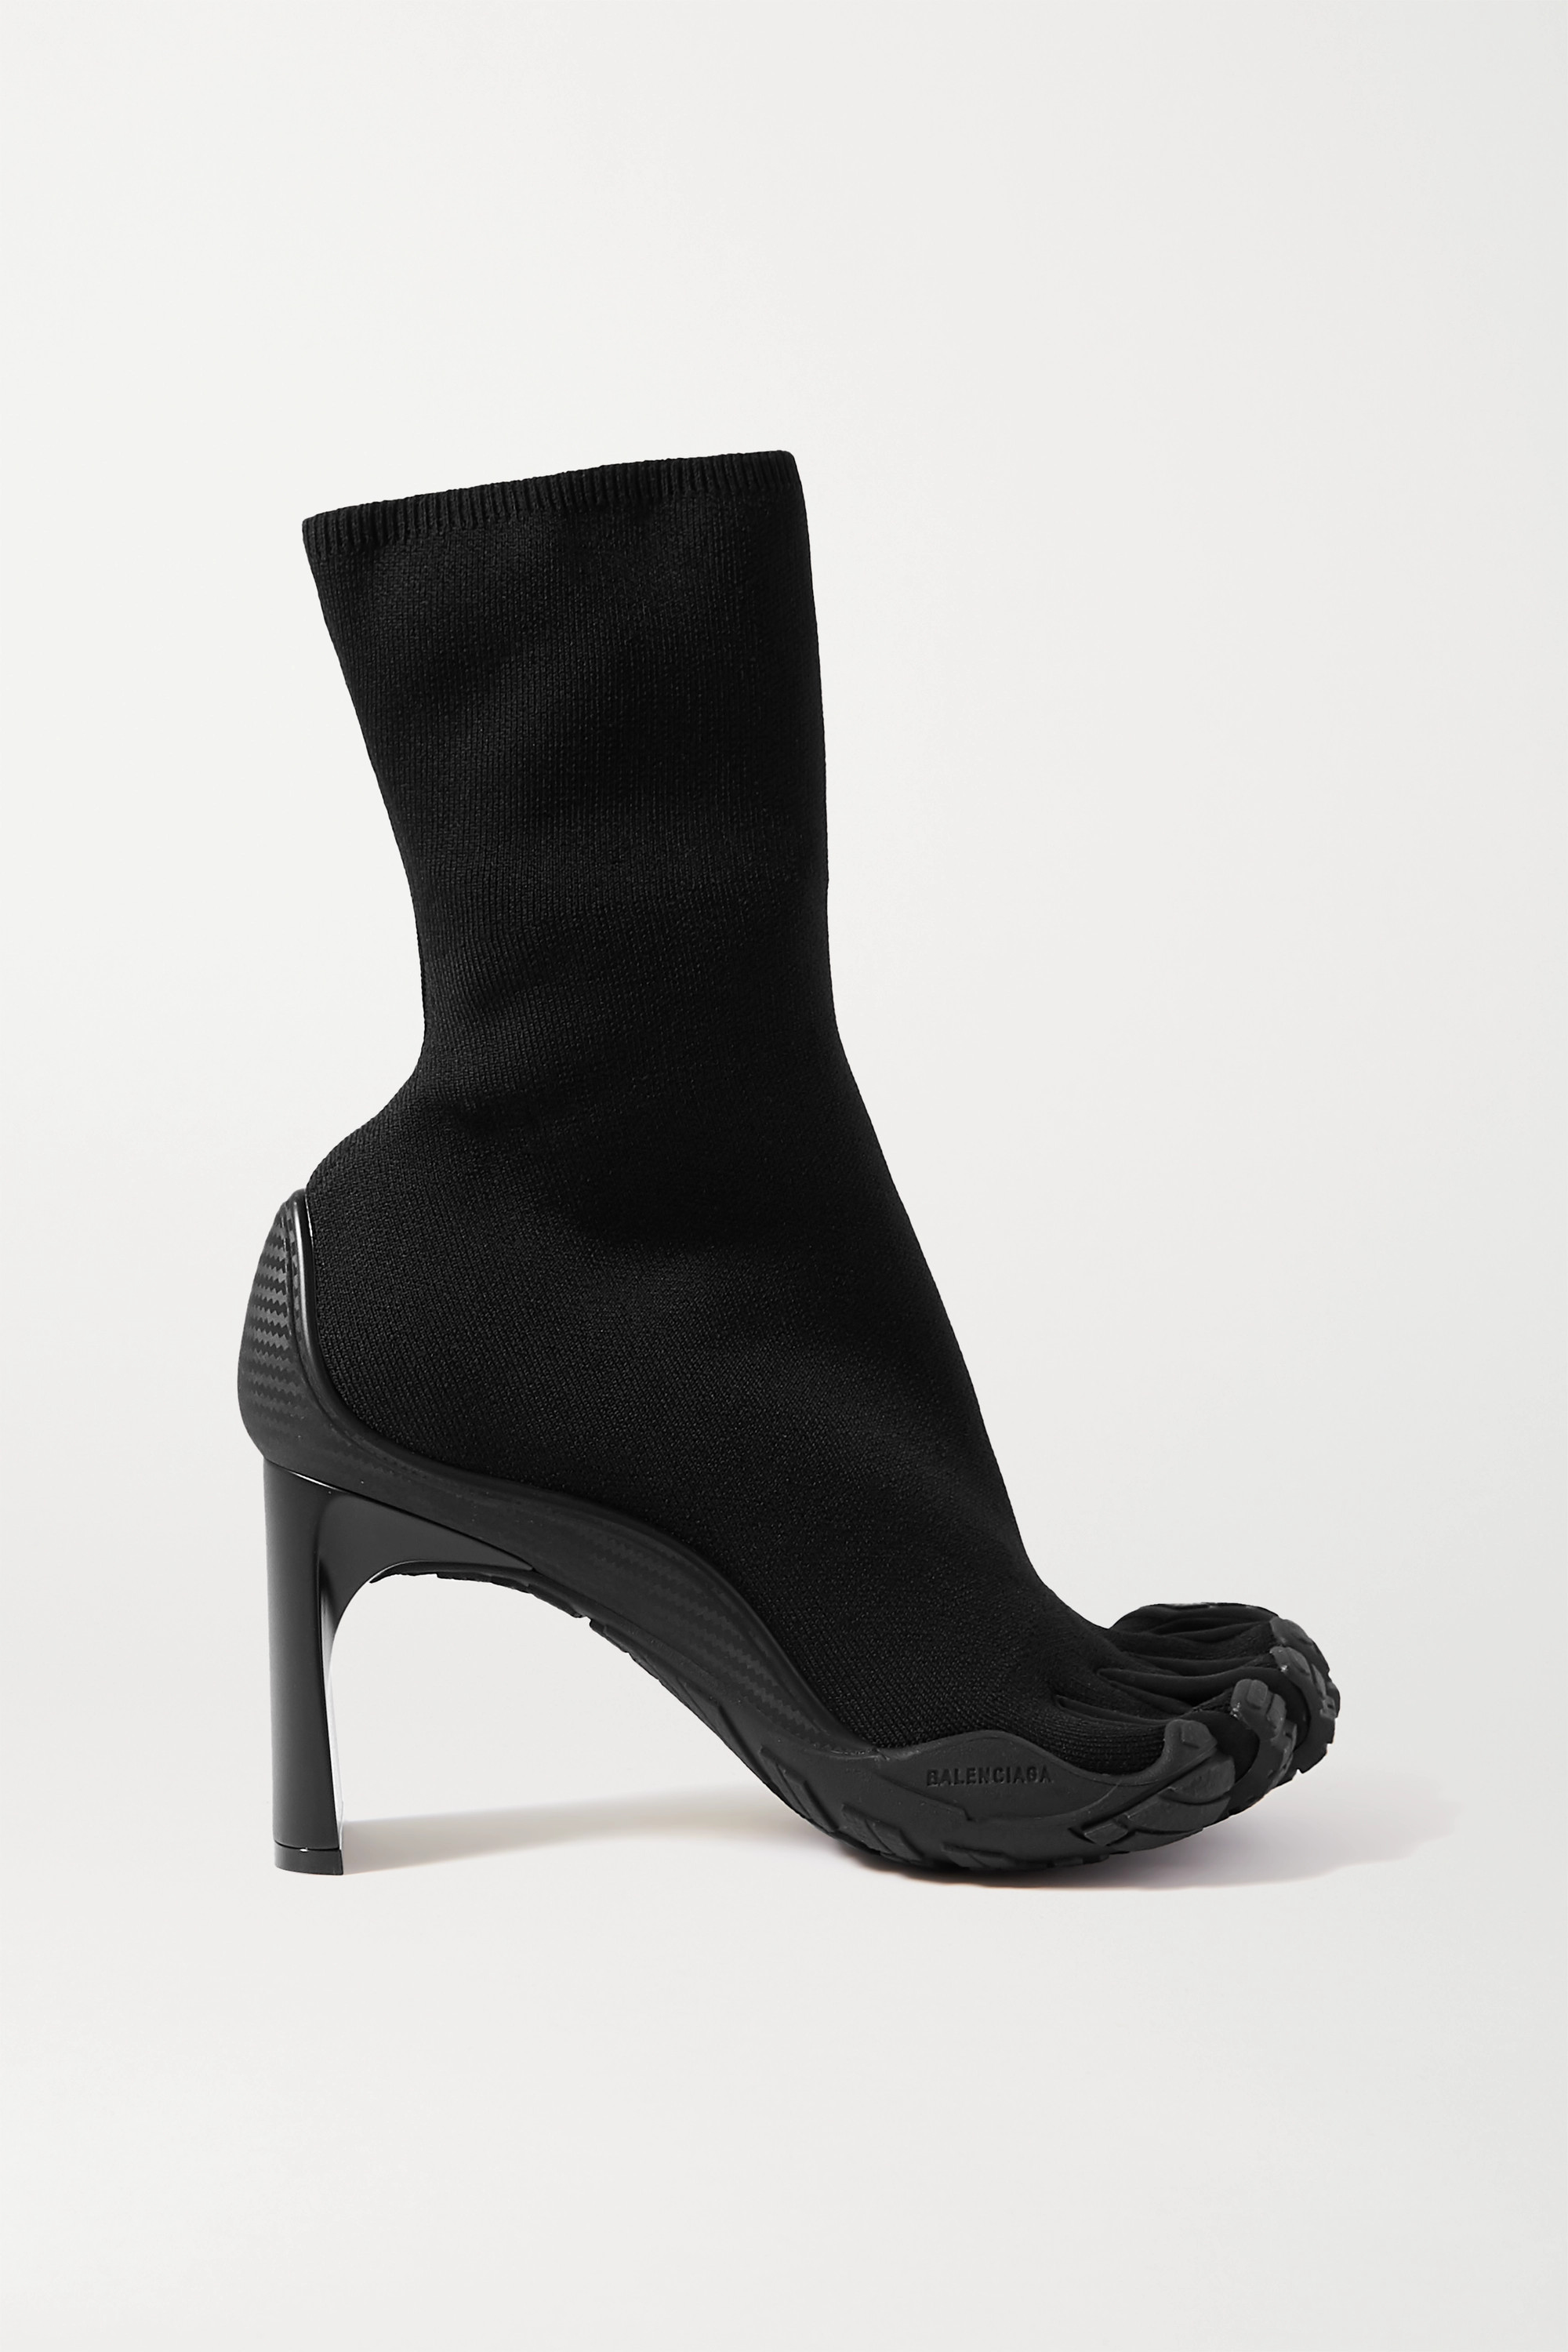 Balenciaga High Toe rubber-trimmed stretch-knit sock boots